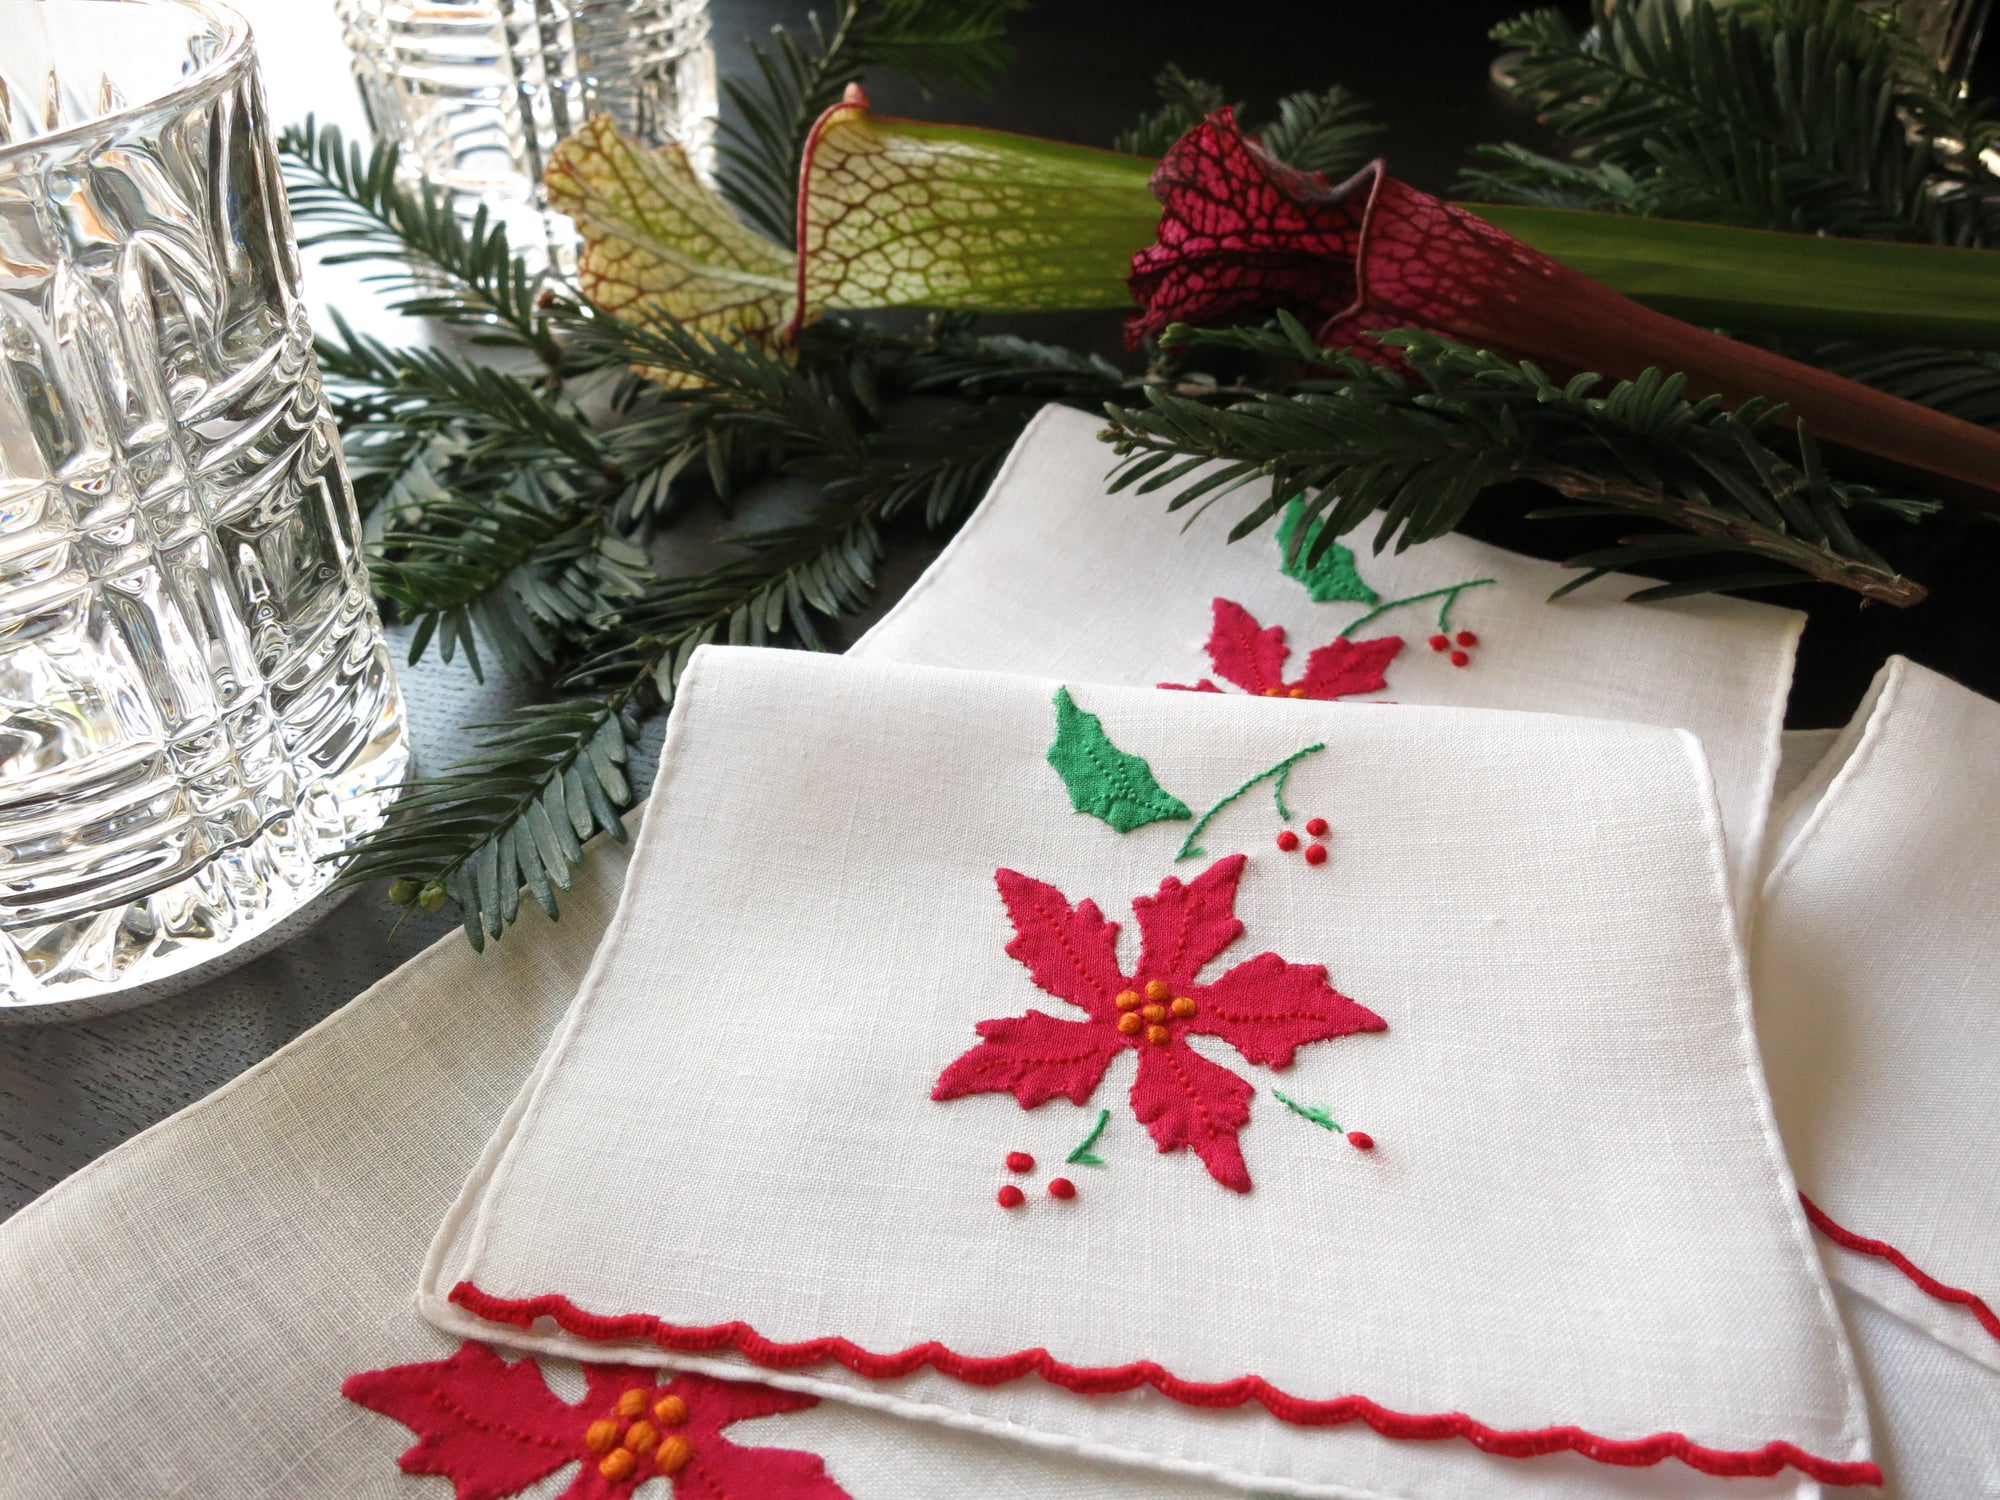 Poinsettias Vintage Madeira Embroidery Holiday Cocktail Napkins - Set of 6